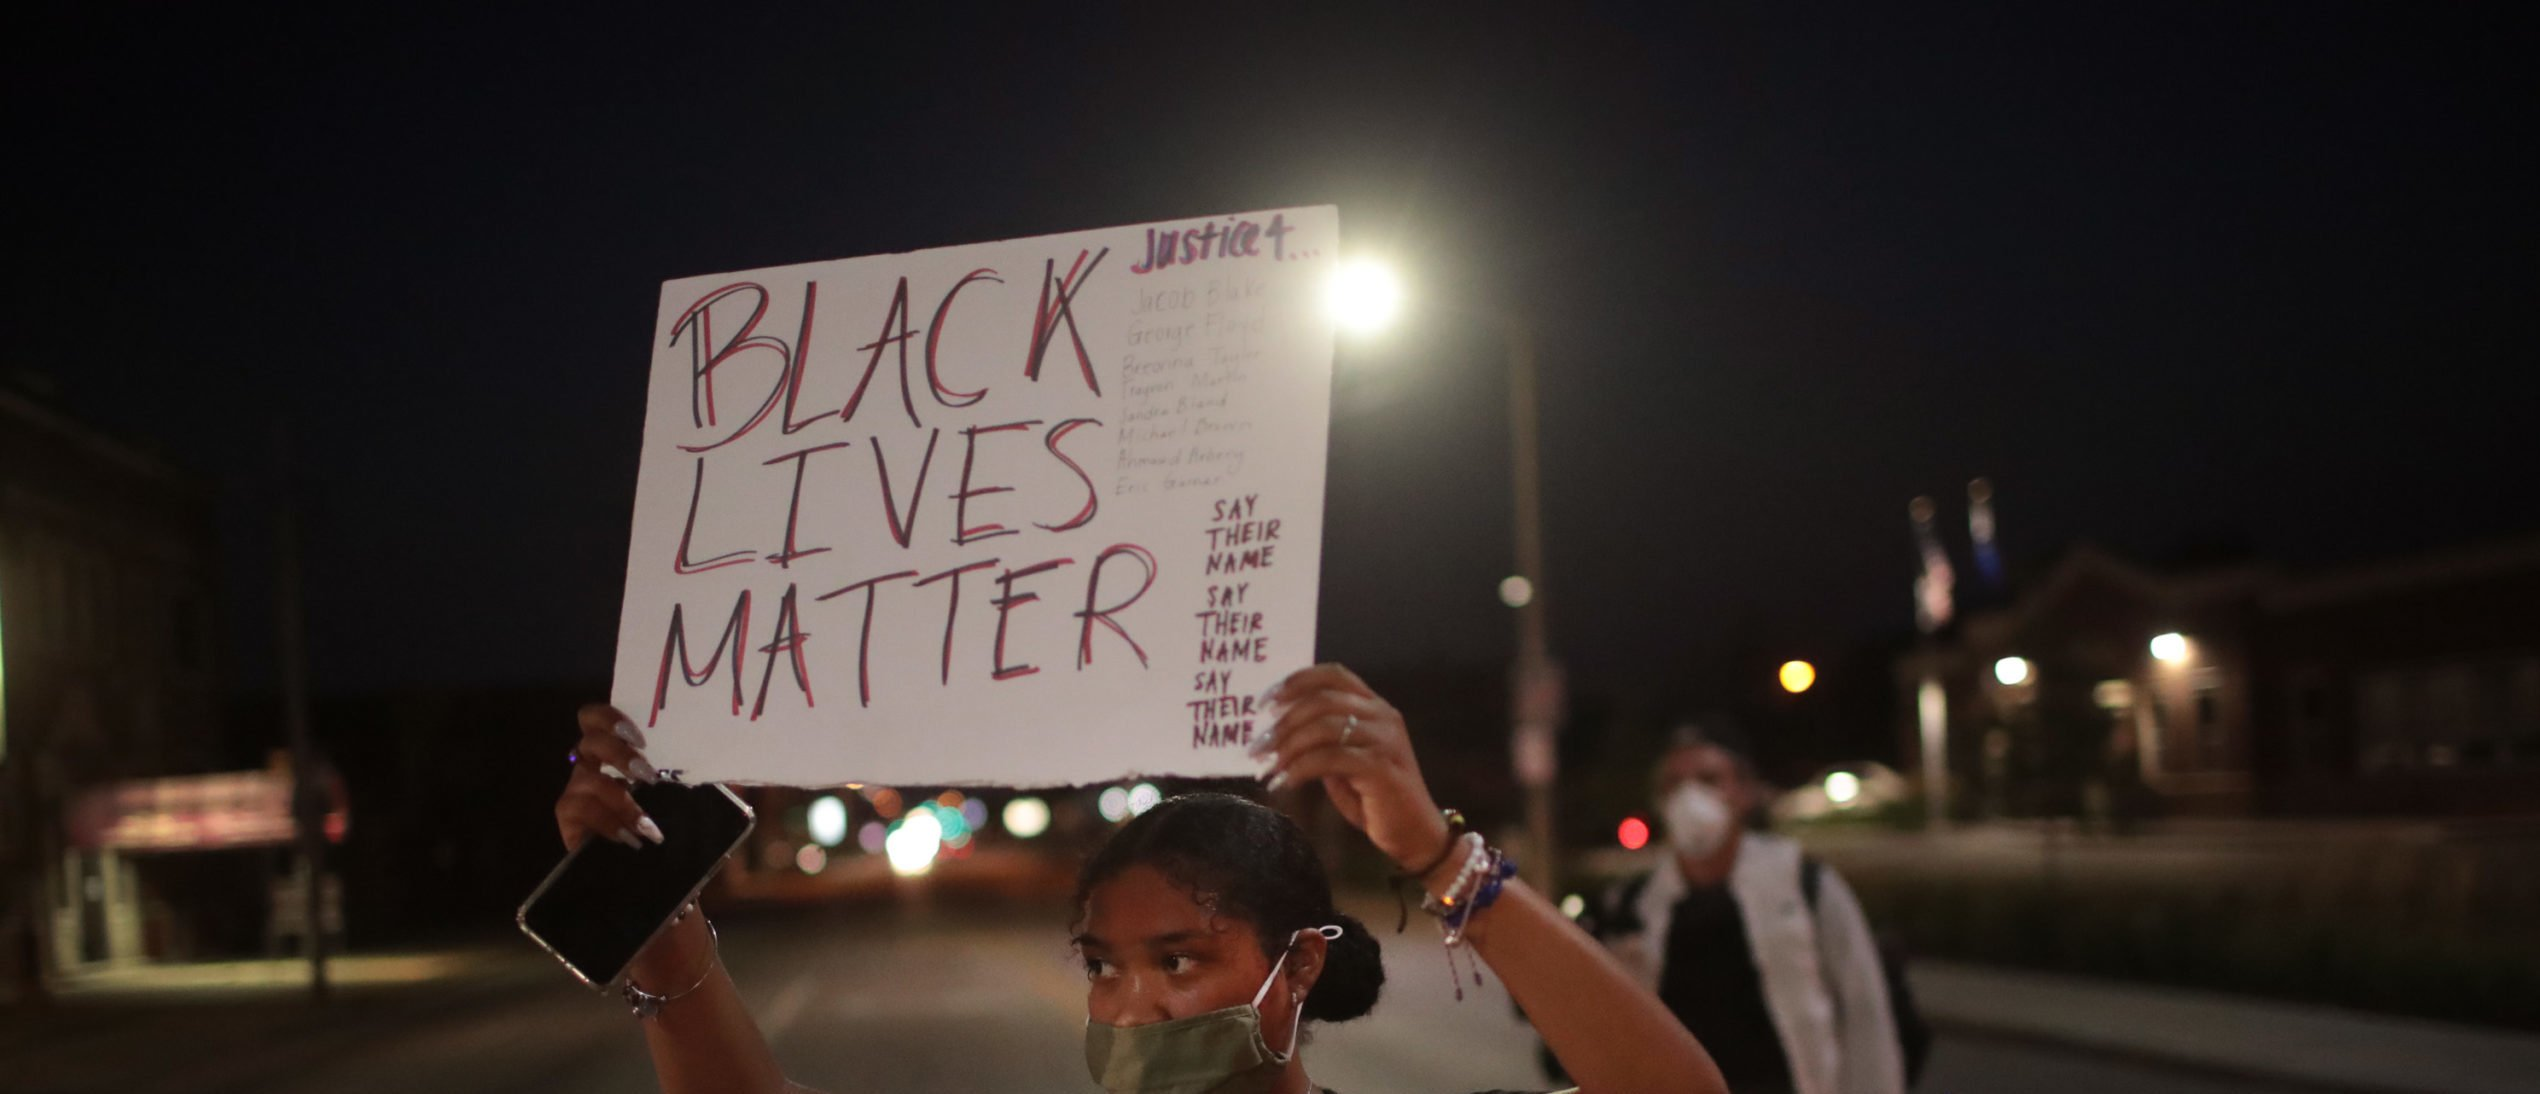 KENOSHA, WISCONSIN - AUGUST 26: Demonstrators protest the shooting of Jacob Blake on August 26, 2020 in Kenosha, Wisconsin. A police officer shot Blake seven times in the back in front of his three children. The shooting sparked three consecutive days of rioting in the city. (Photo by Scott Olson/Getty Images)